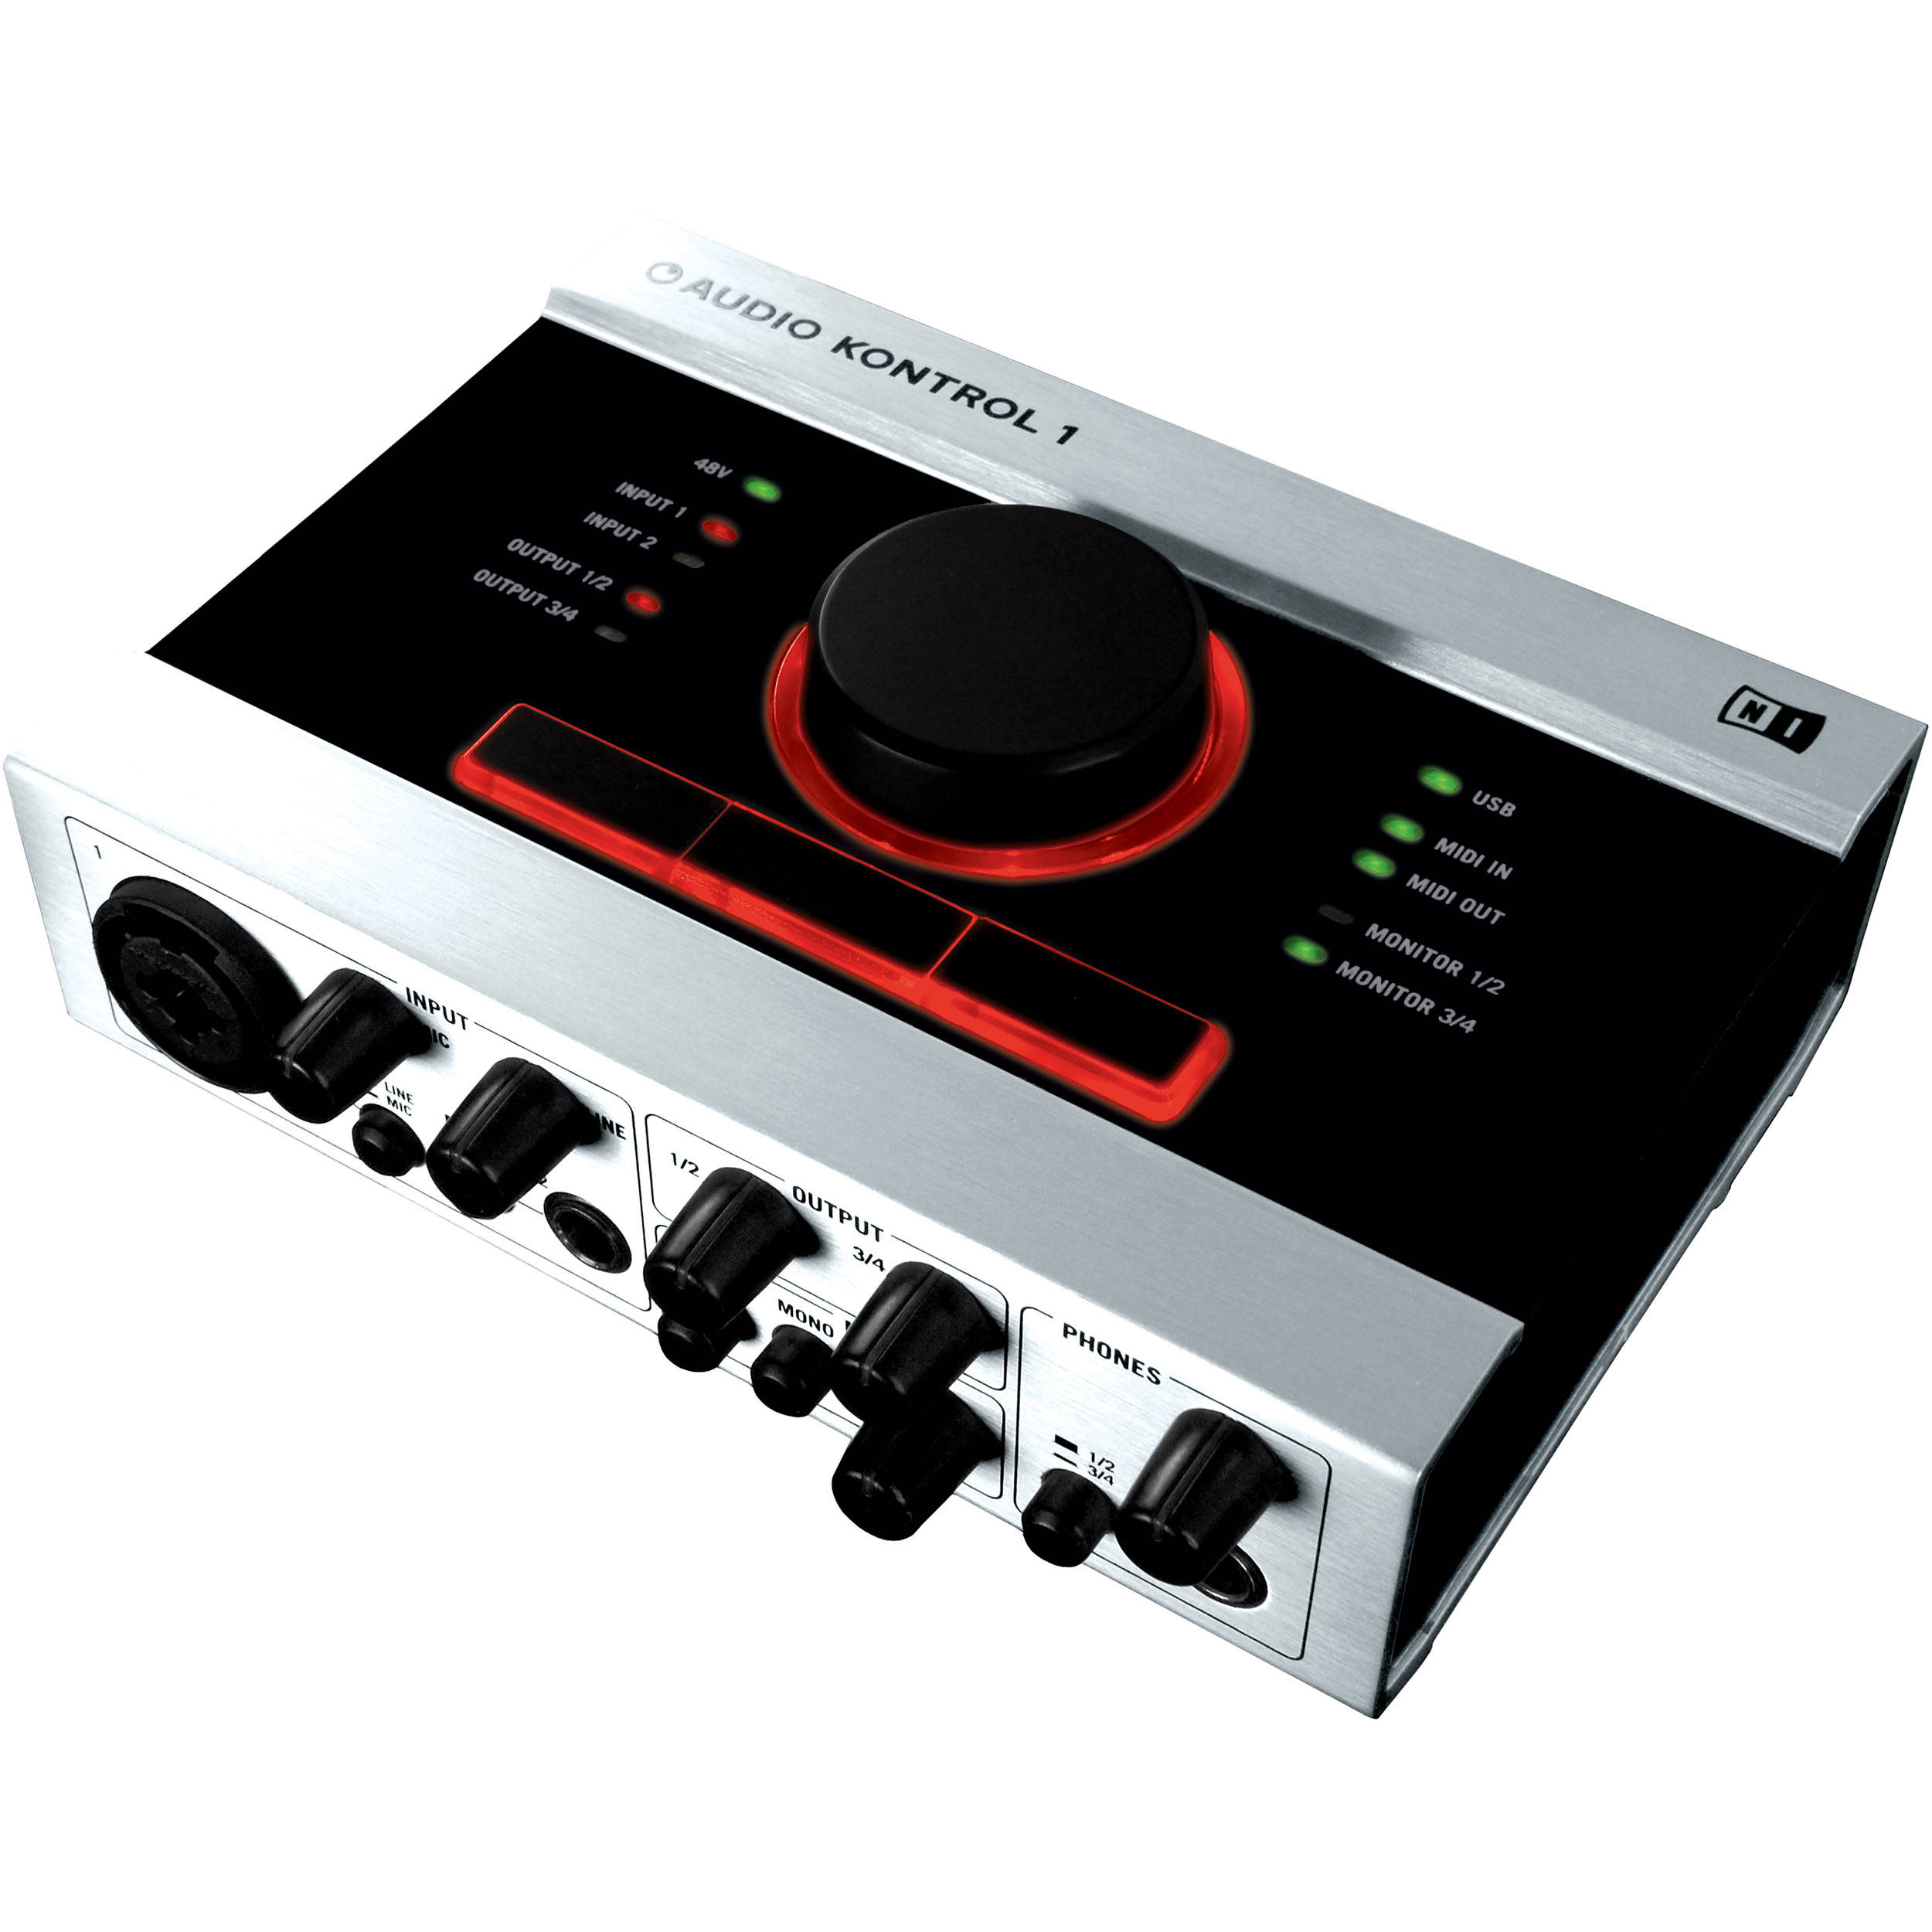 native instruments audio kontrol 1 audio interface 11310 b h. Black Bedroom Furniture Sets. Home Design Ideas